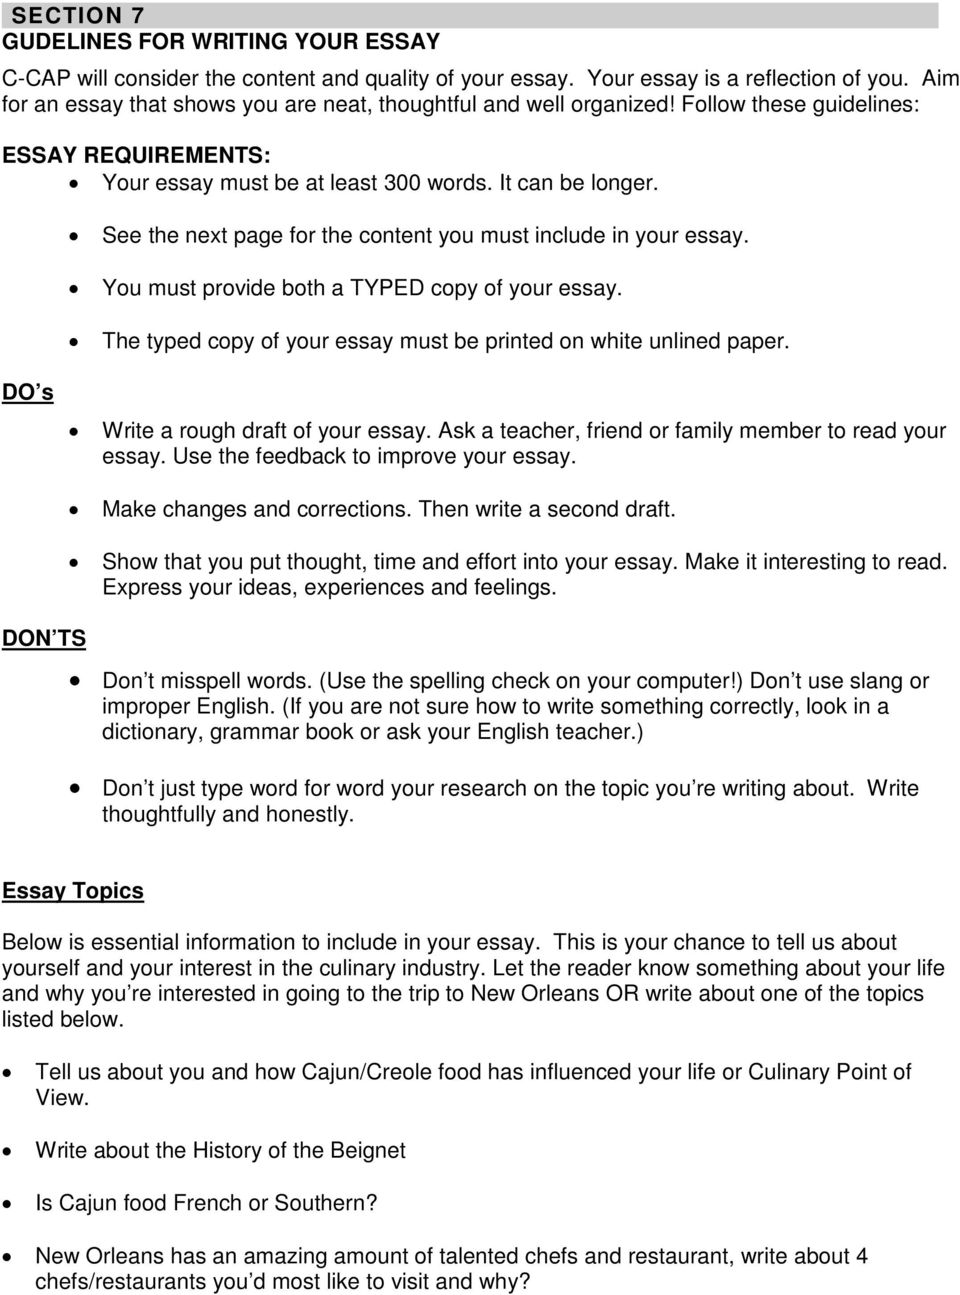 essay about trip with family